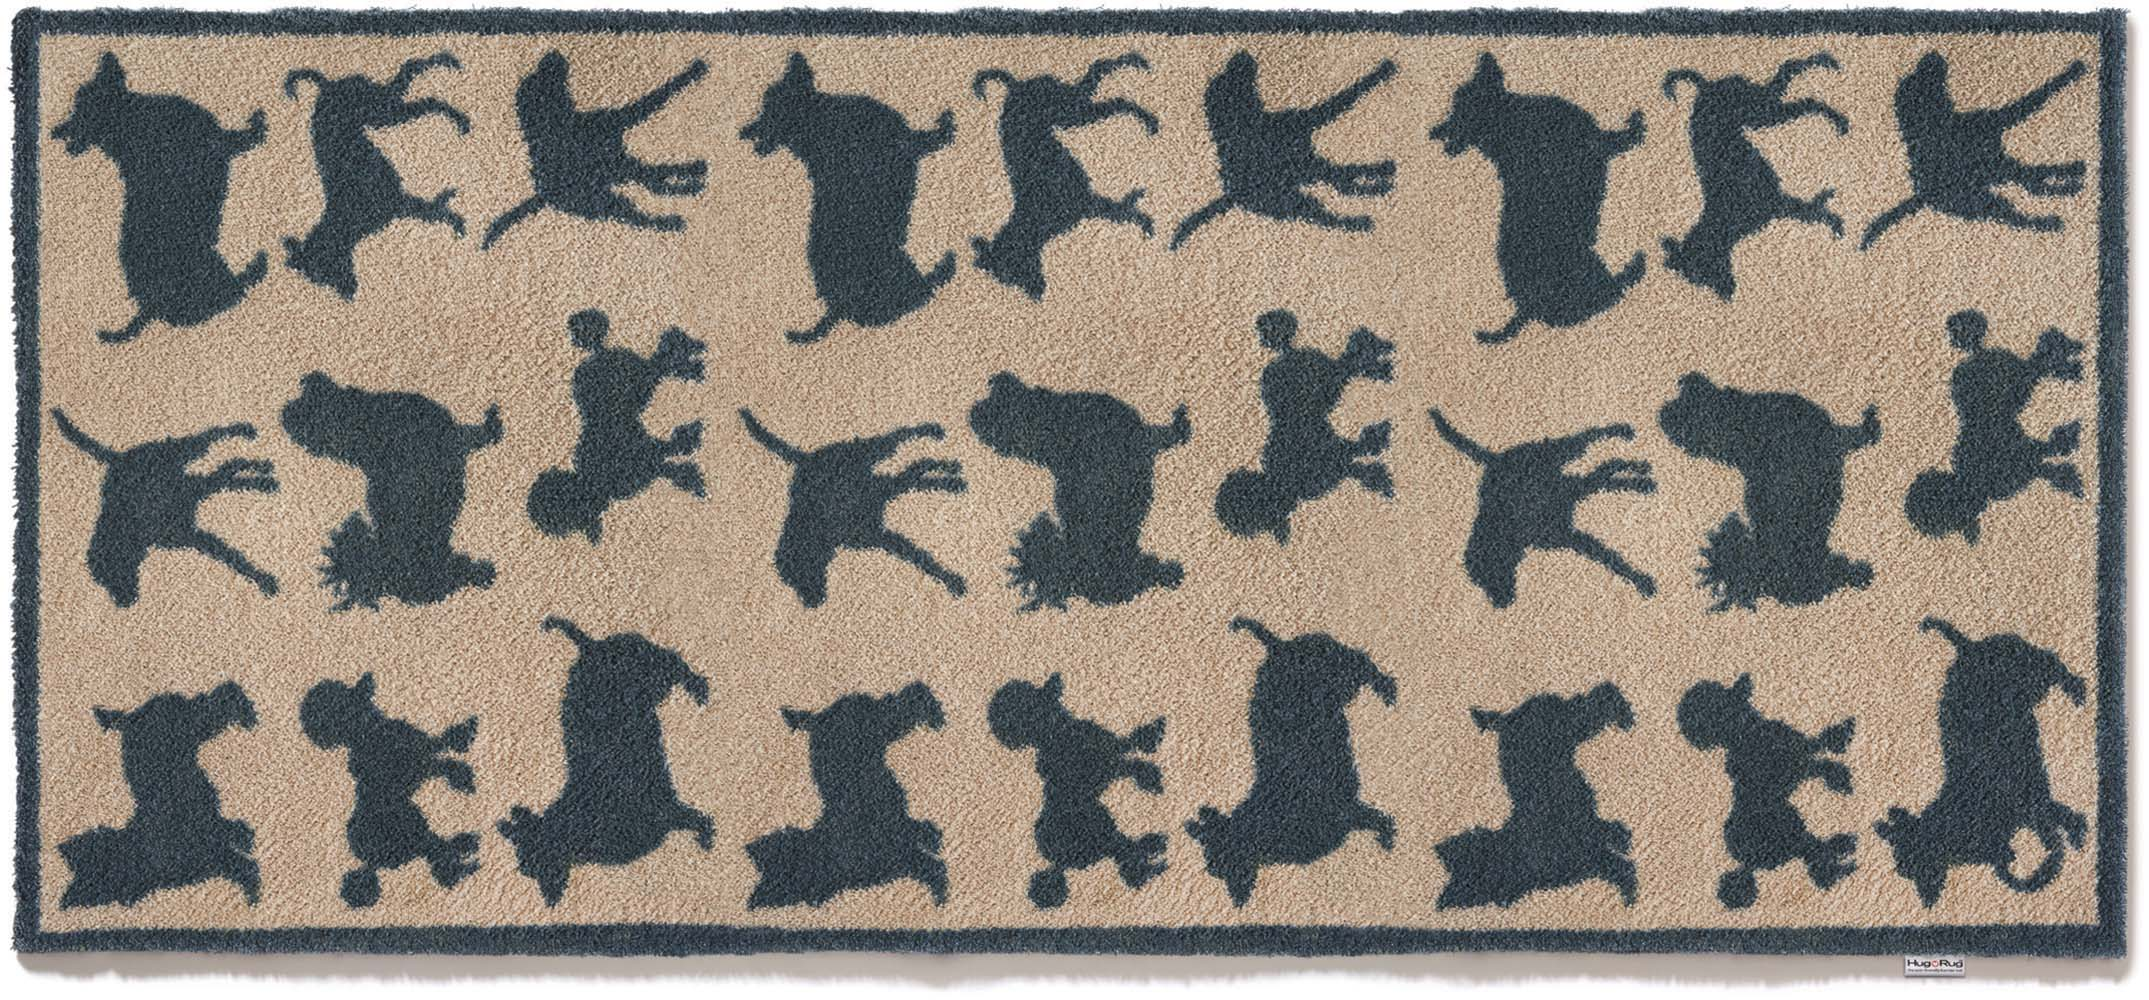 tapis paillasson pour la maison motif chien 65x150 cm. Black Bedroom Furniture Sets. Home Design Ideas